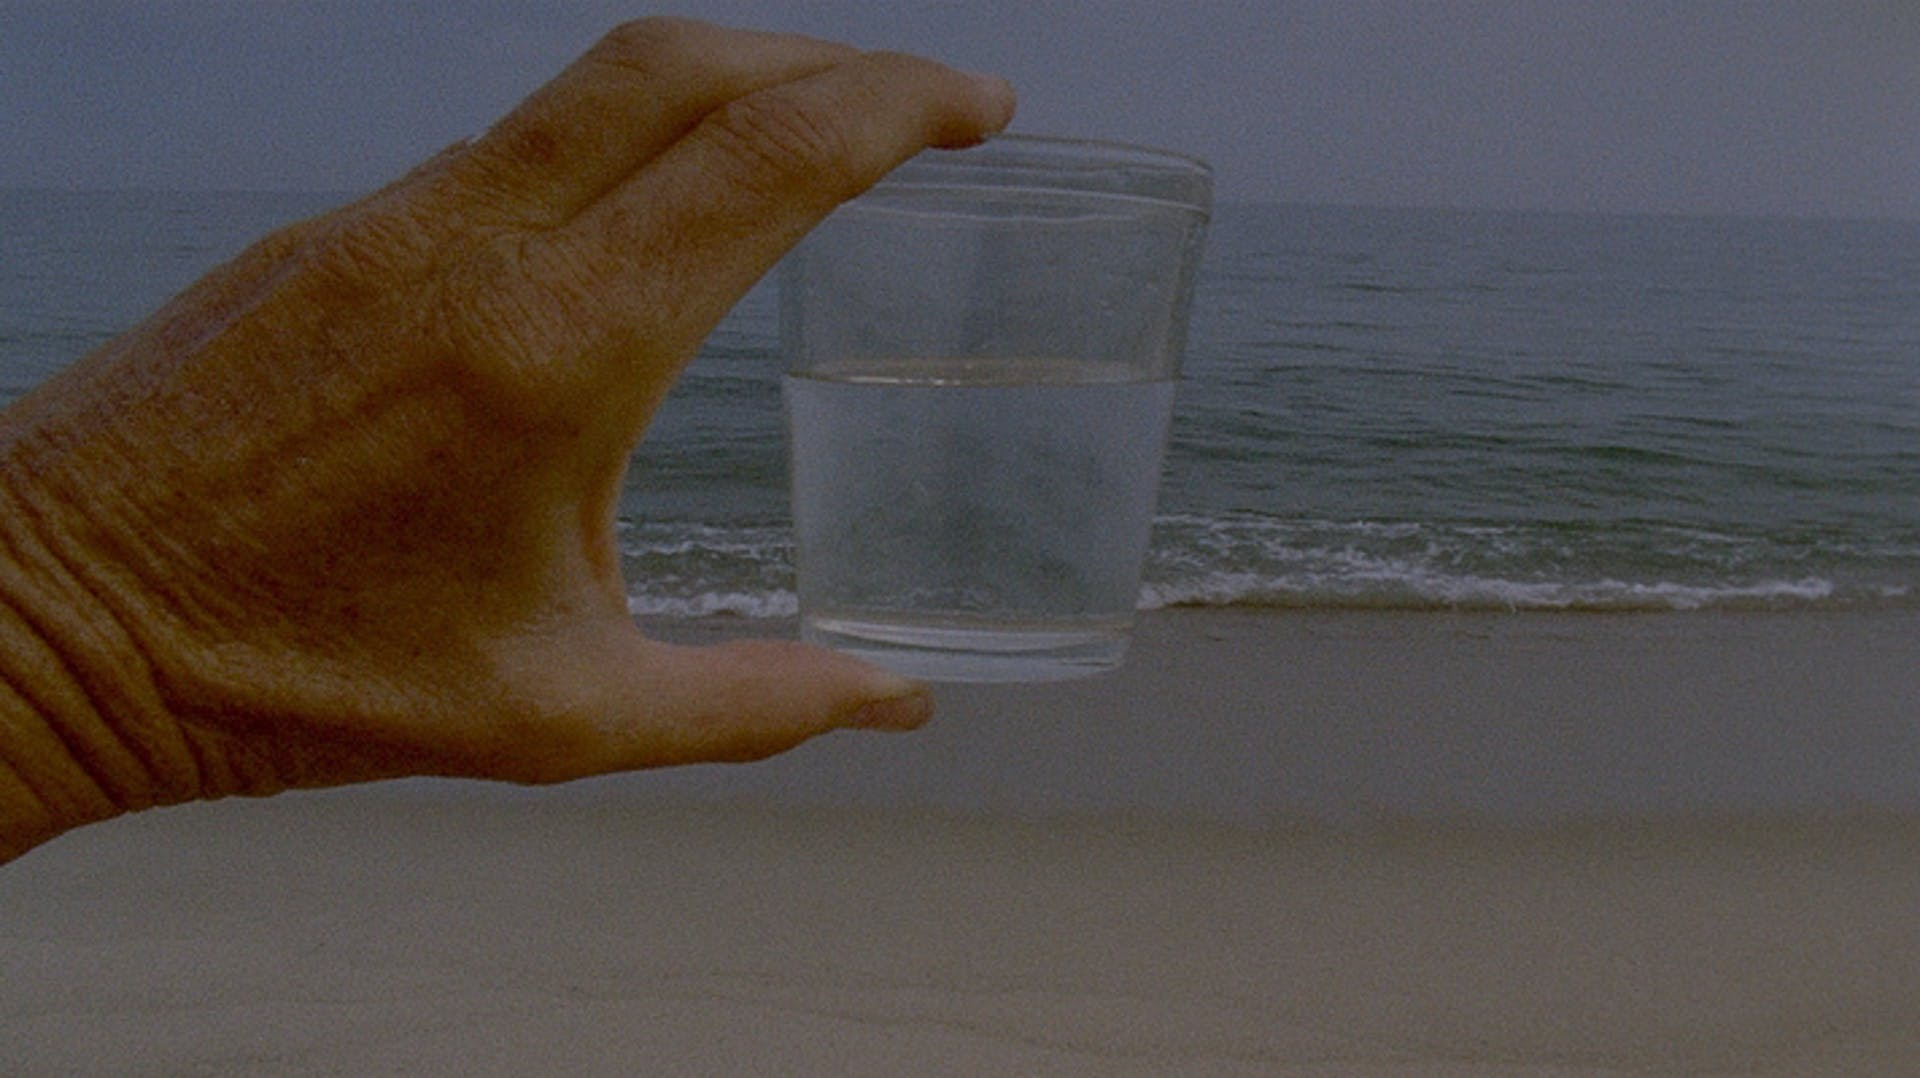 Image of hand holding glass of water on a beach with ocean in background